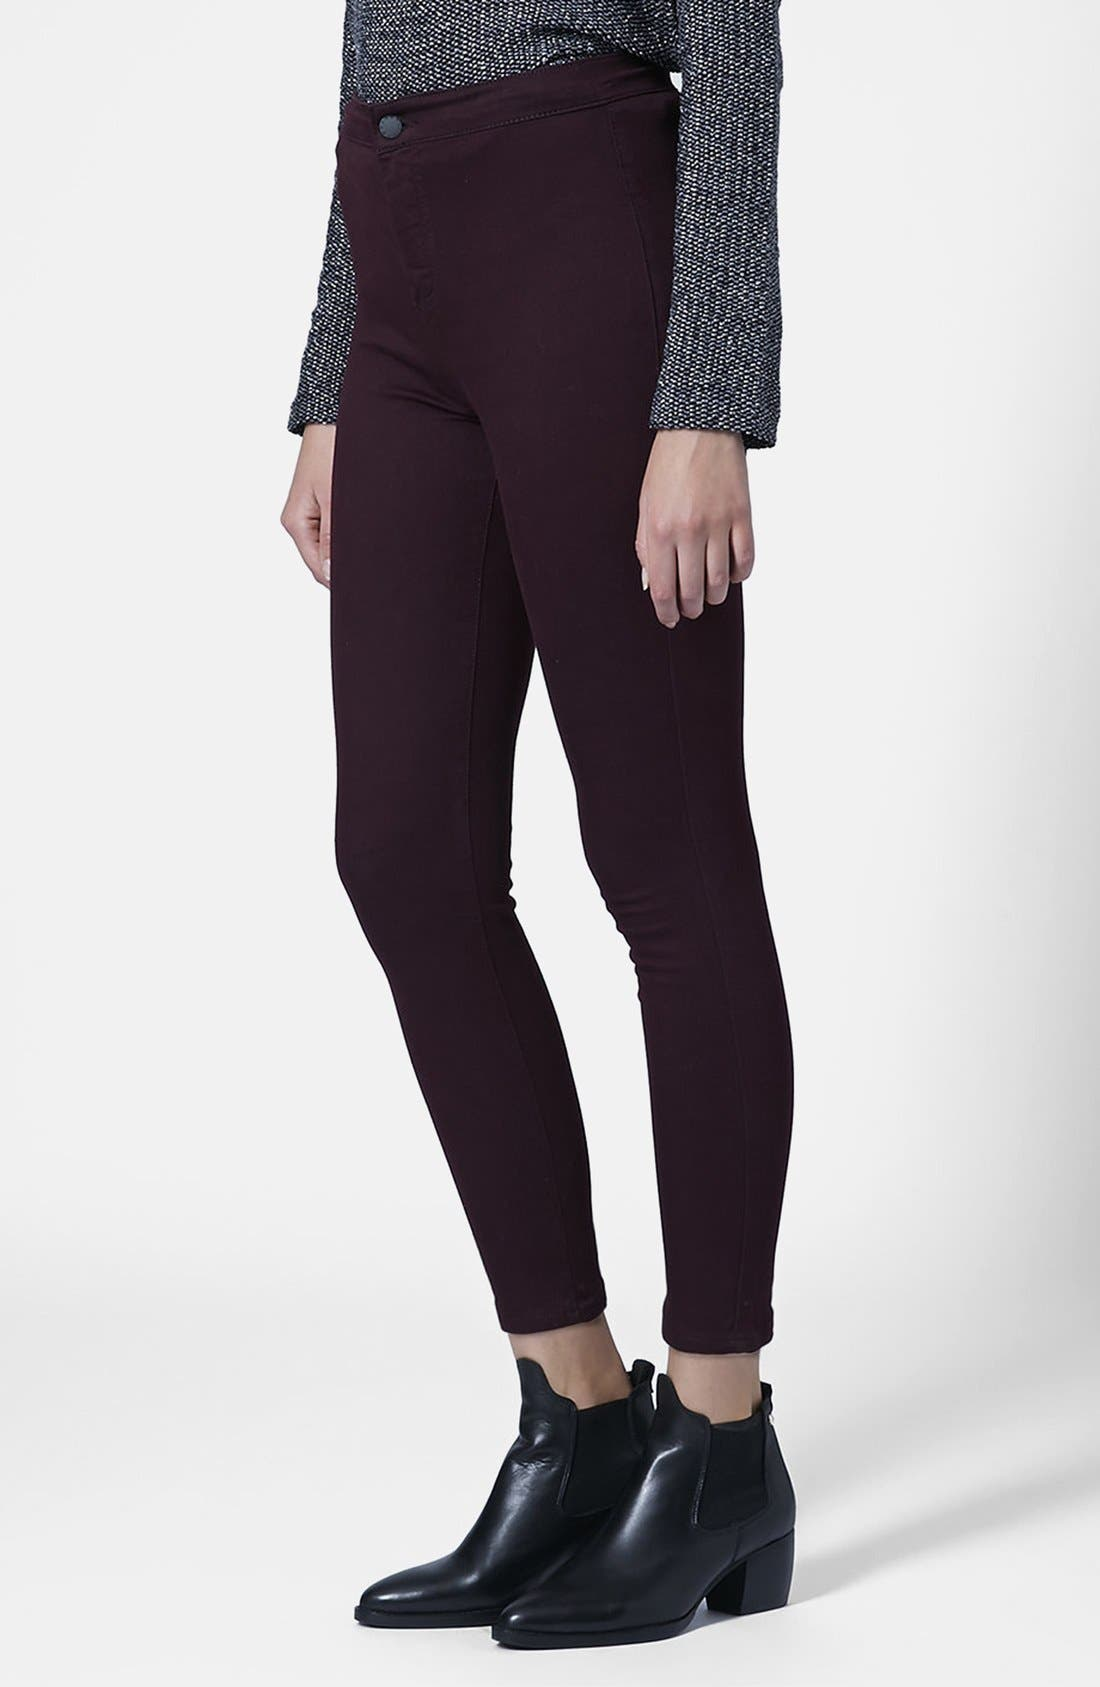 Alternate Image 1 Selected - Topshop Moto 'Joni' High Rise Skinny Jeans (Purple) (Petite)